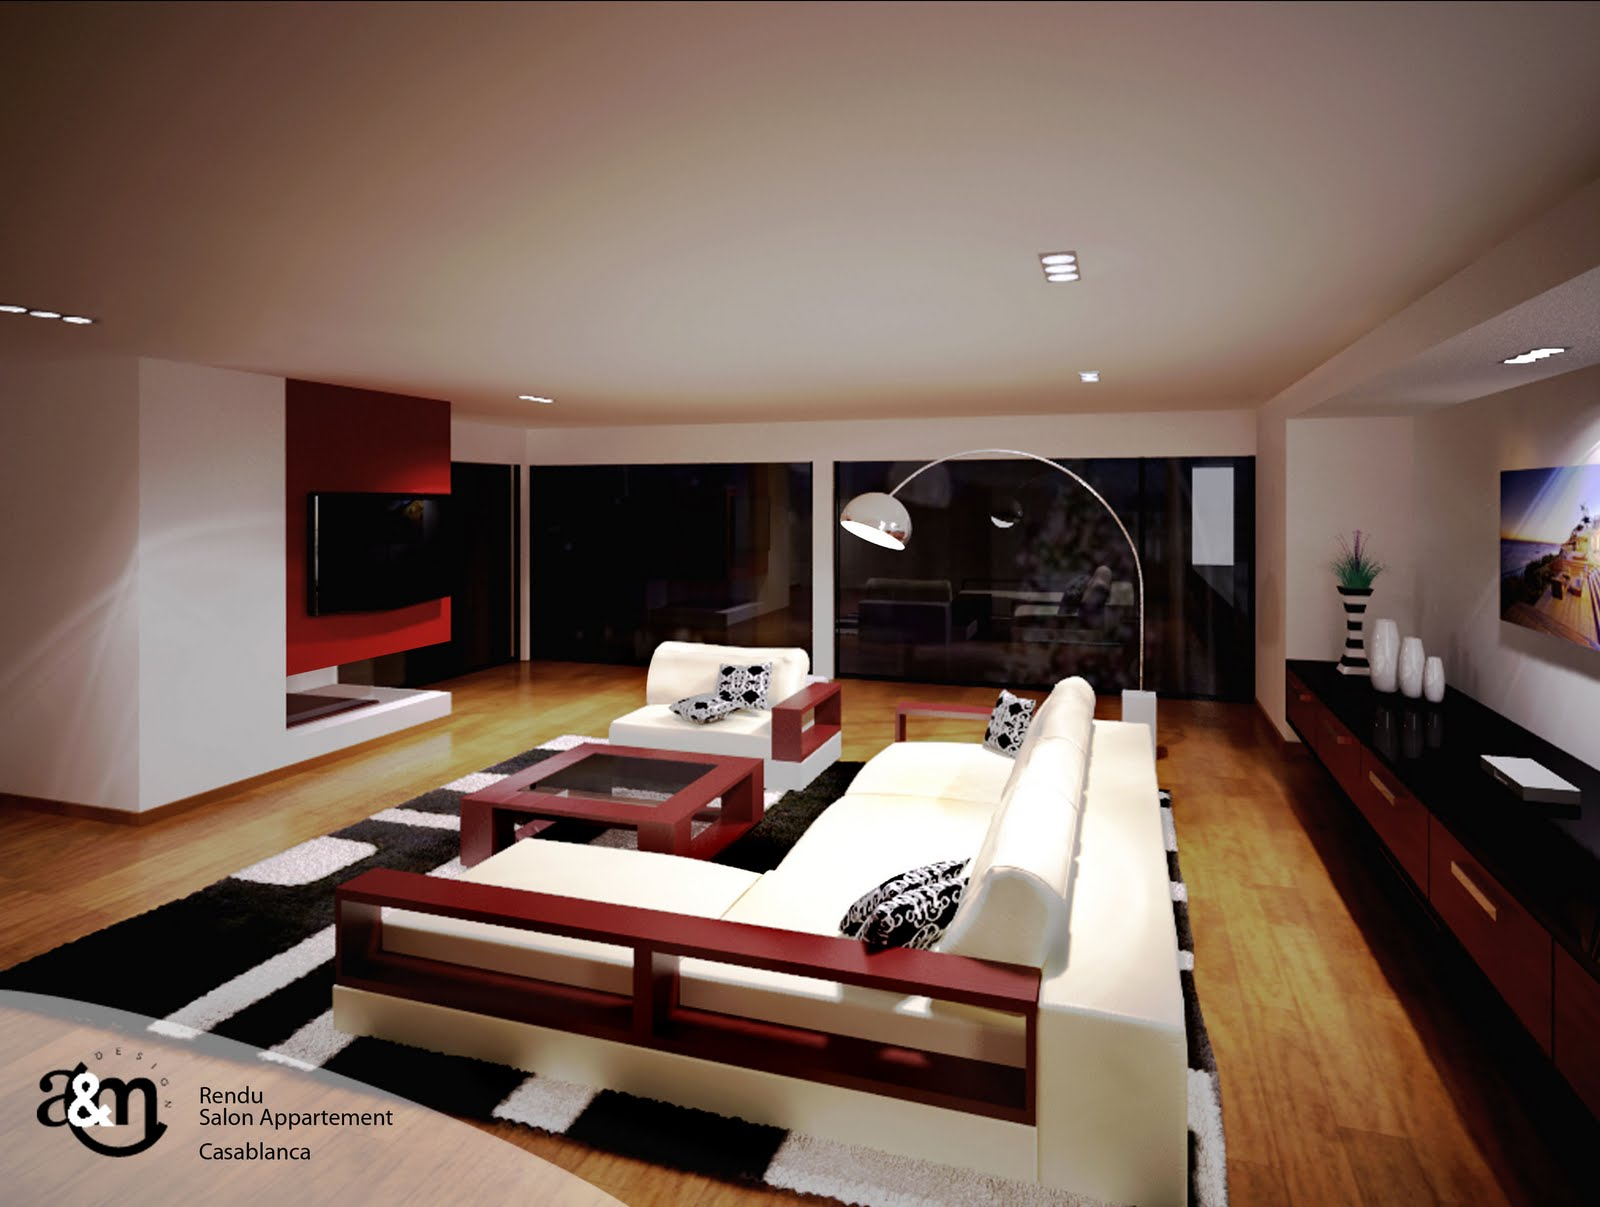 A m design architecture d 39 interieur design agencement for Design architecture interieur